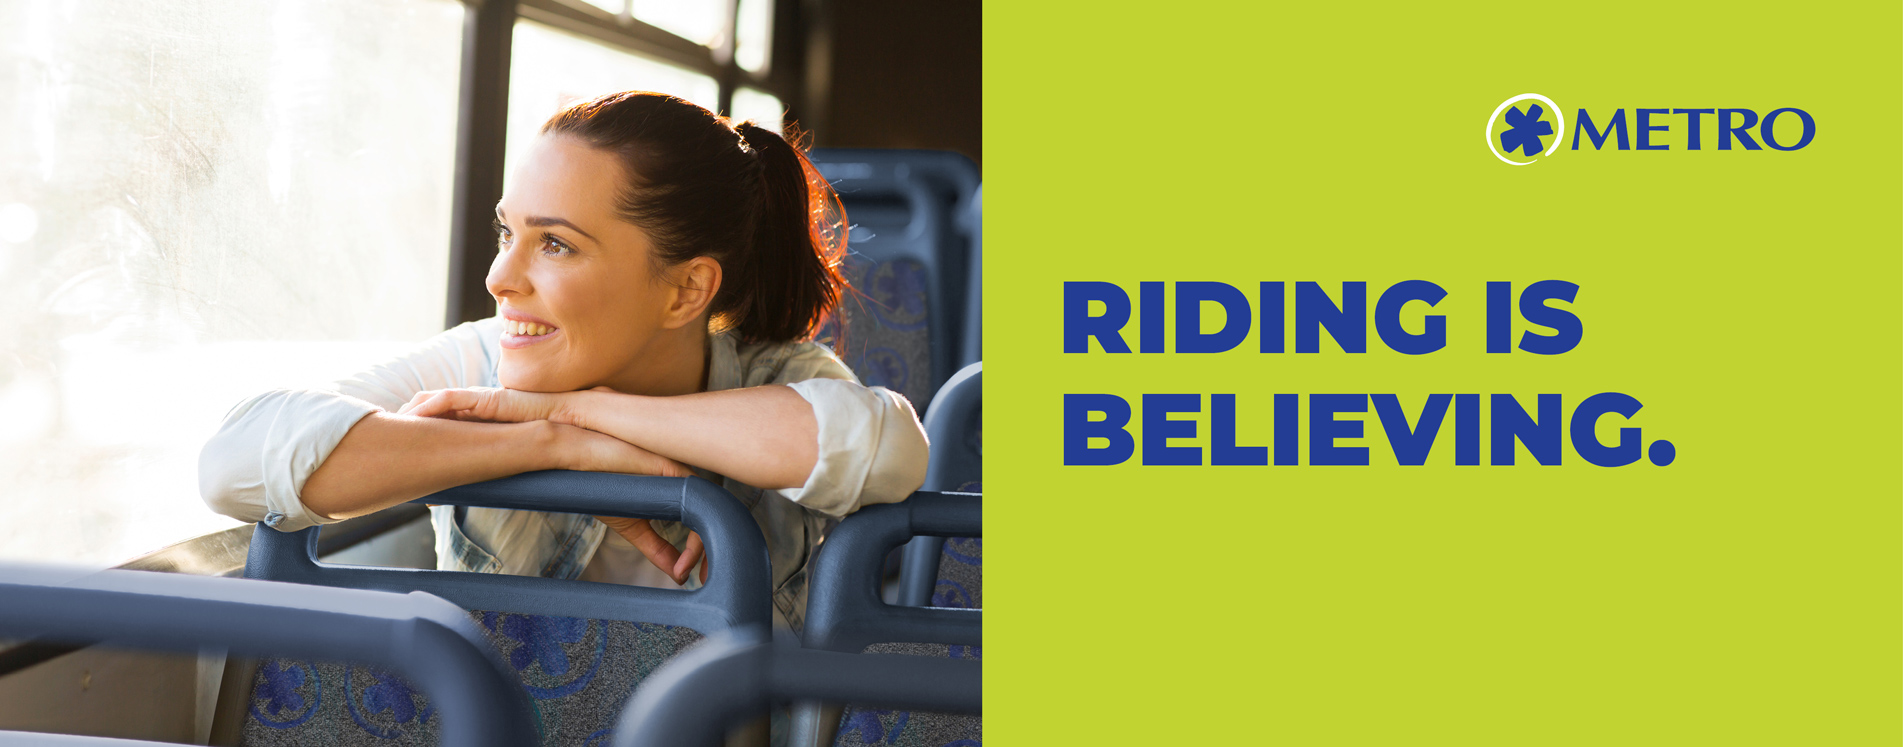 Riding Is Believing